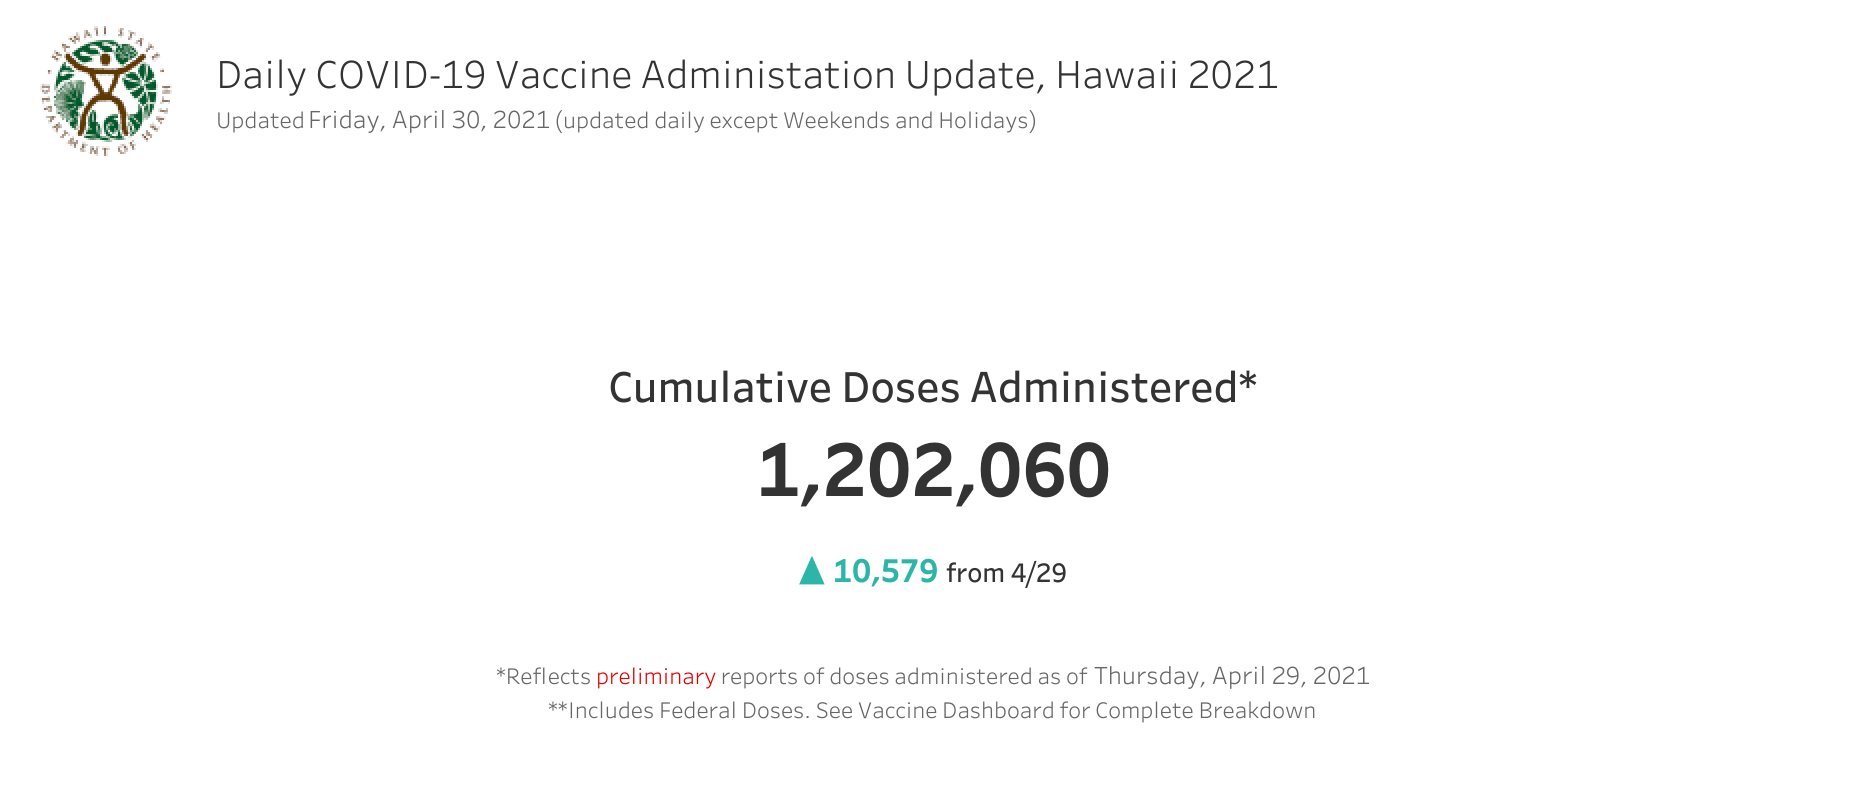 Daily COVID-19 Vaccine Administration Update April 30, 2021